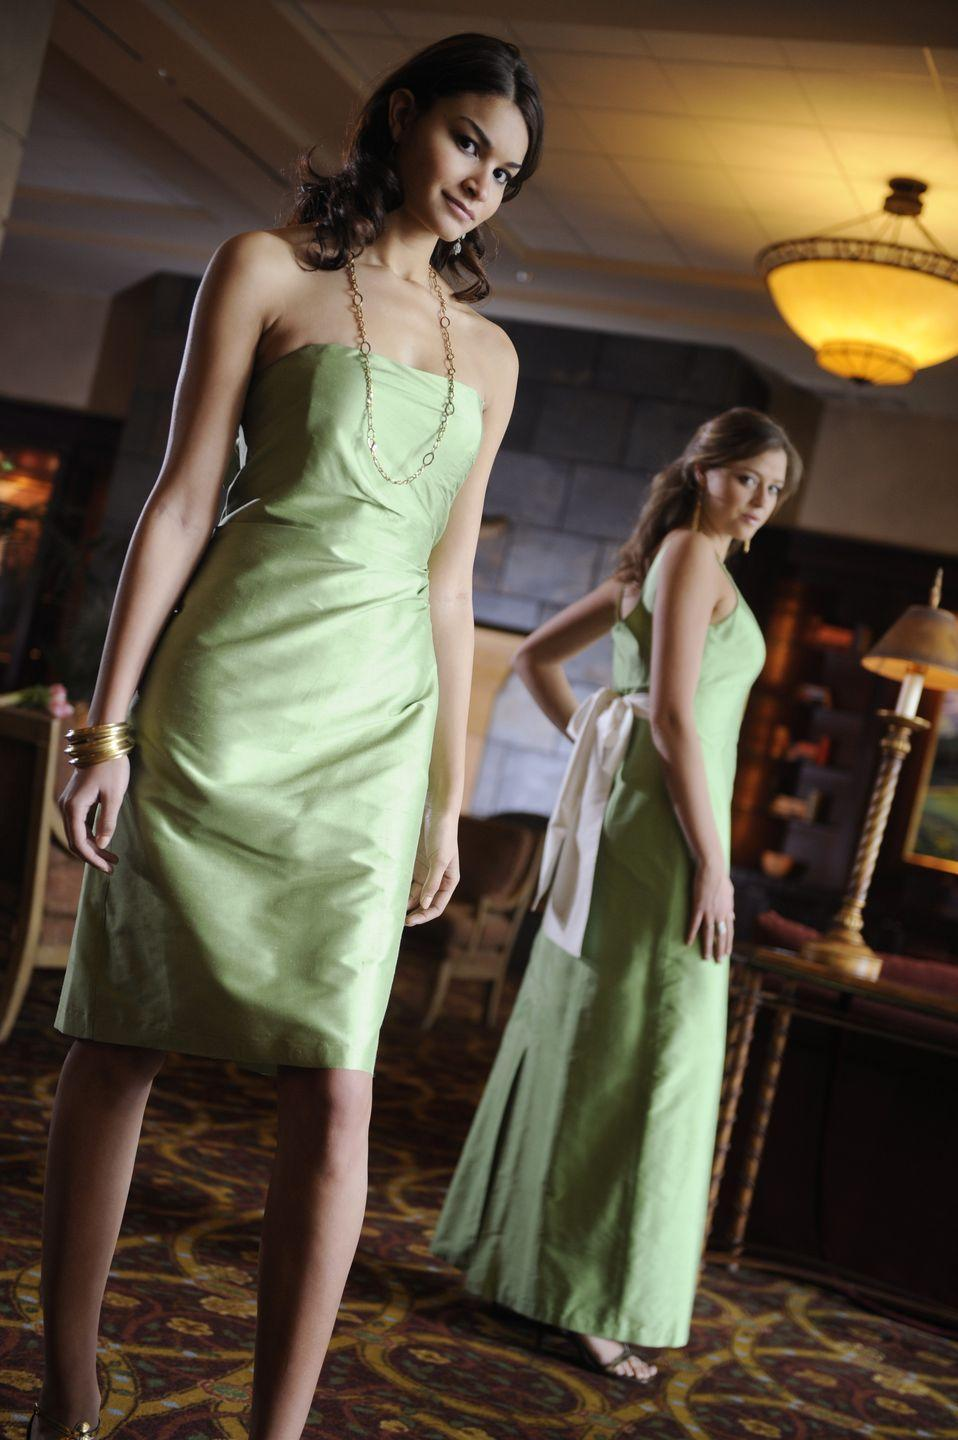 <p>With bad bridesmaids dresses becoming more of a stigma than a cliché, brides began allowing bridesmaids to chose the style they preferred in a color the bride picked.</p>